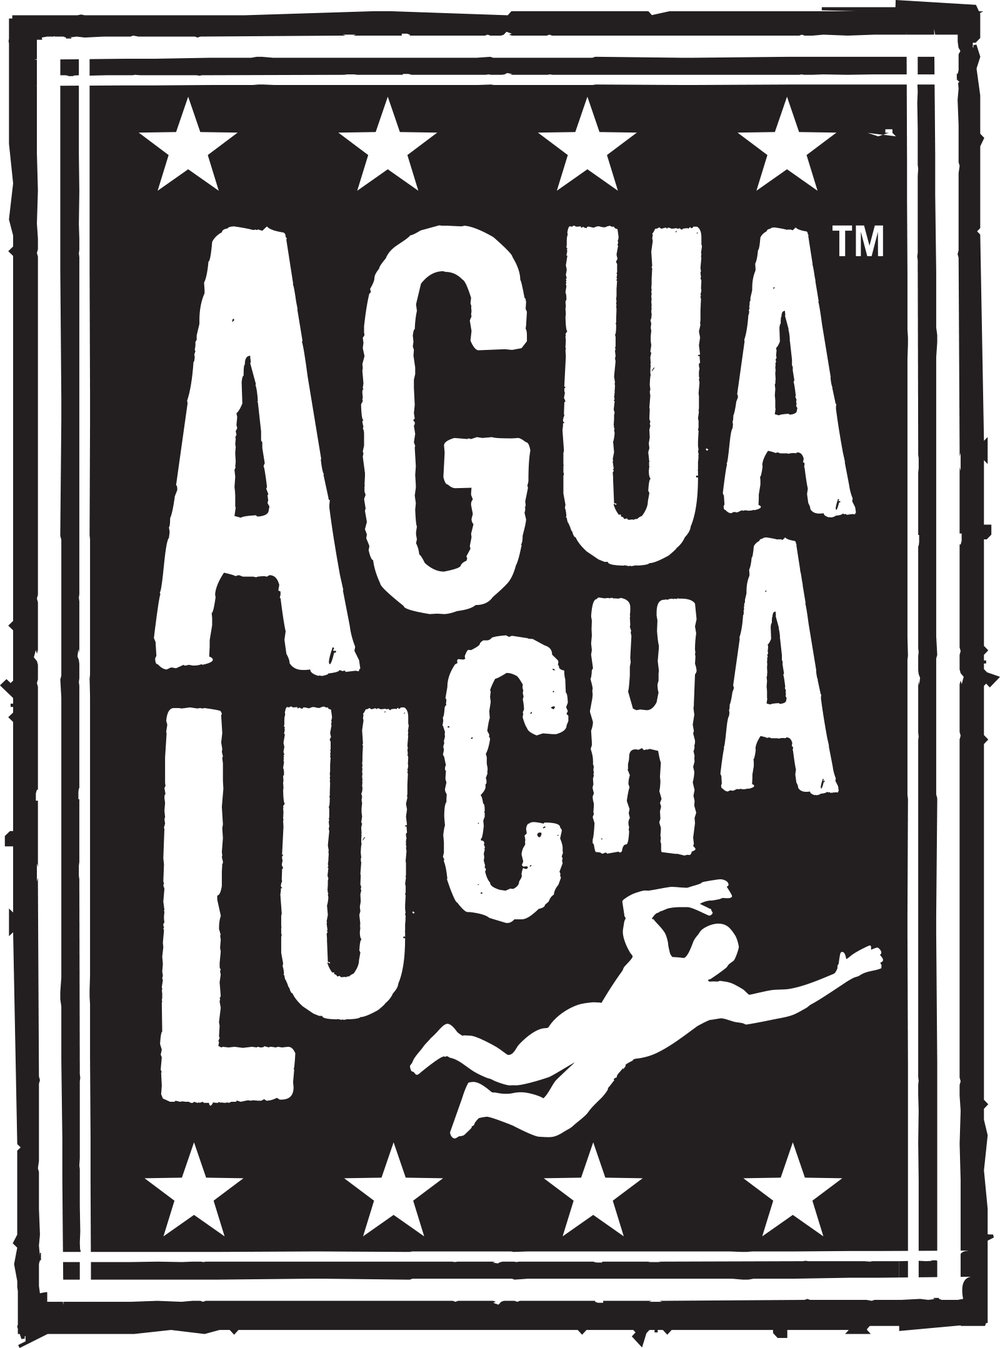 Agua Lucha - Sponsor for the 11th Annual George Lopez Celebrity 2018